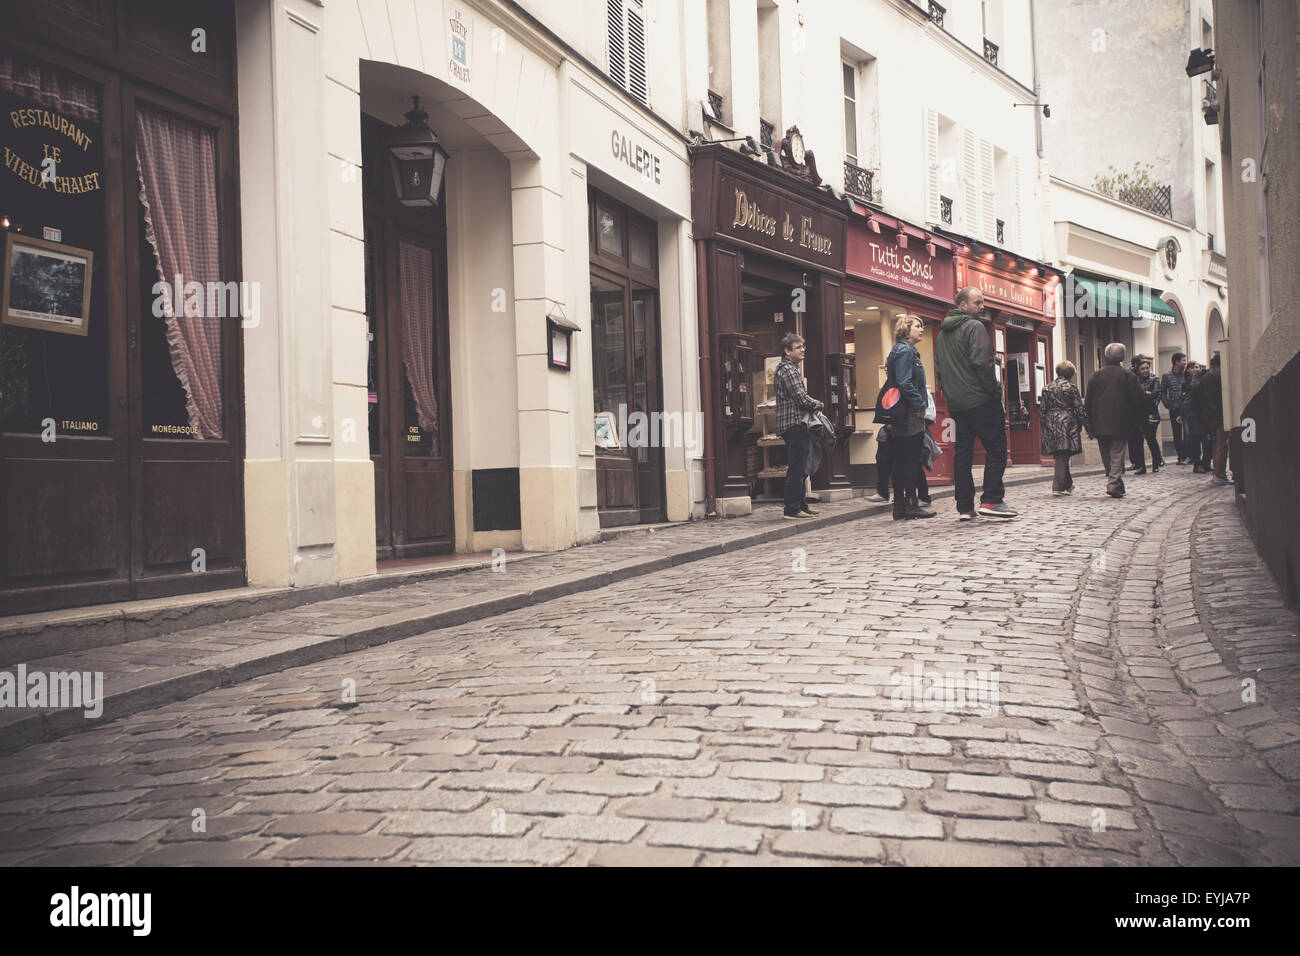 Vintage filter effect street view of Montmartre in Paris France - Stock Image